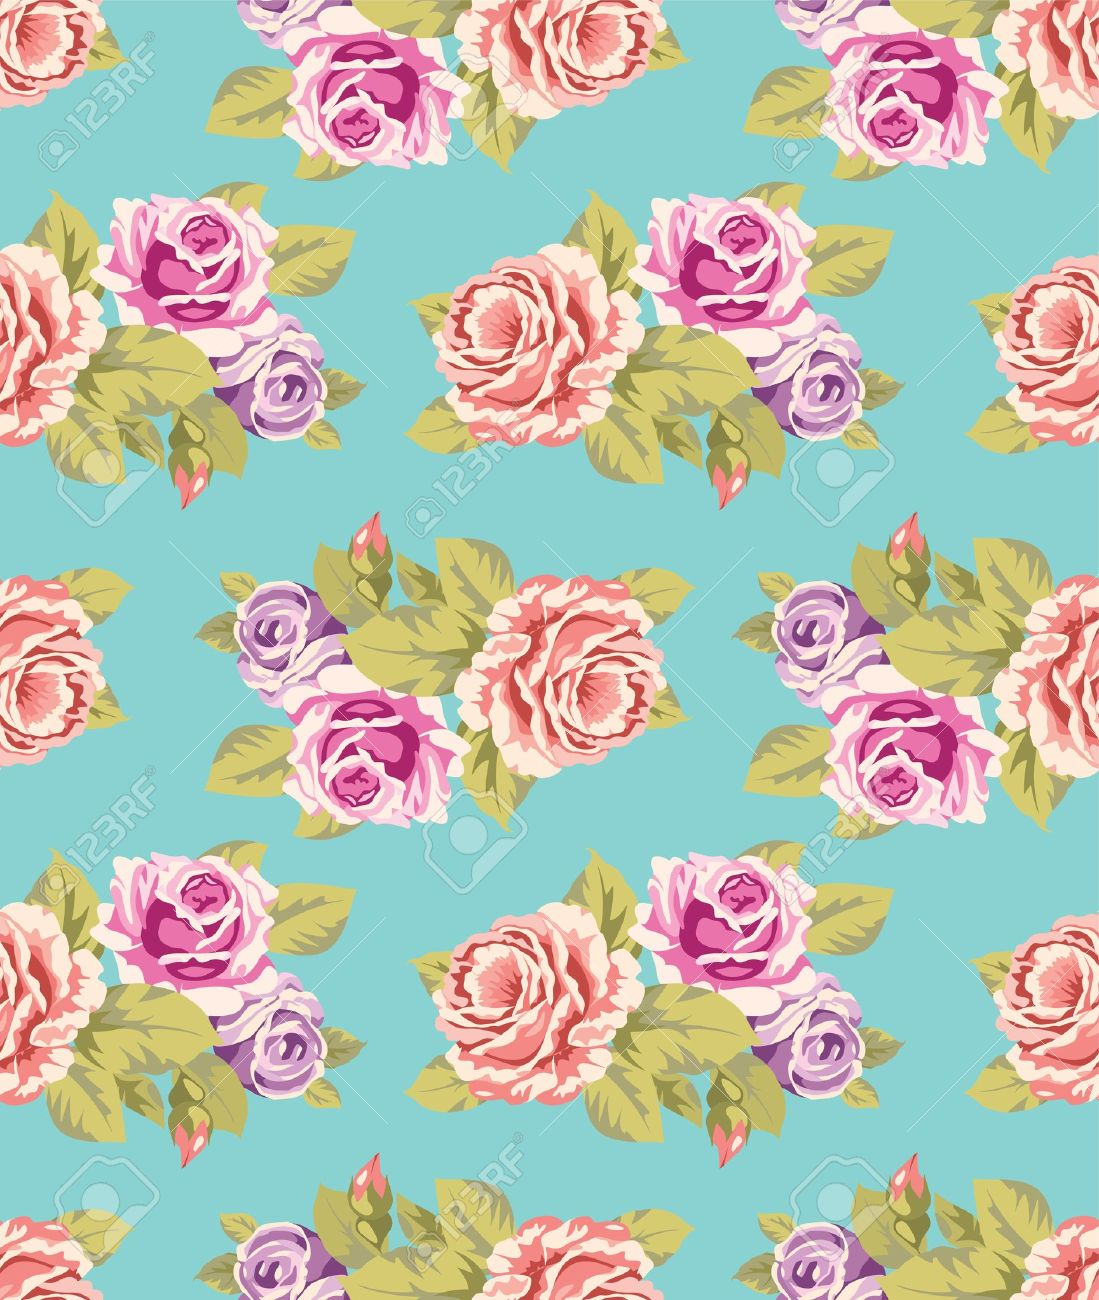 Seamless wallpaper pattern with of purple and pink roses on seamless wallpaper pattern with of purple and pink roses on turquoise background vector illustration stock mightylinksfo